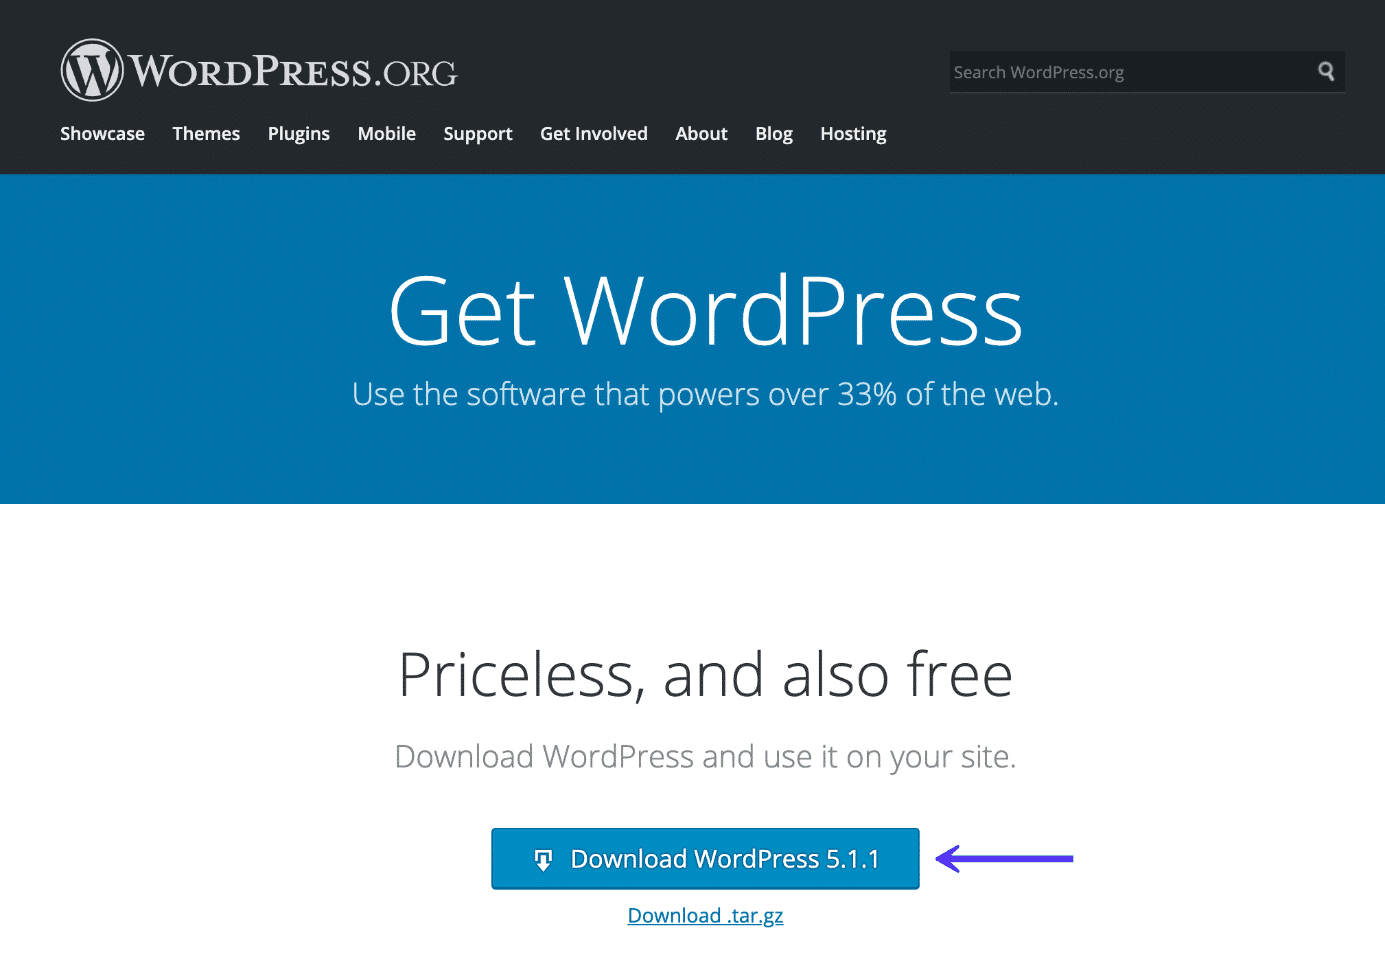 Download the most recent copy of WordPress